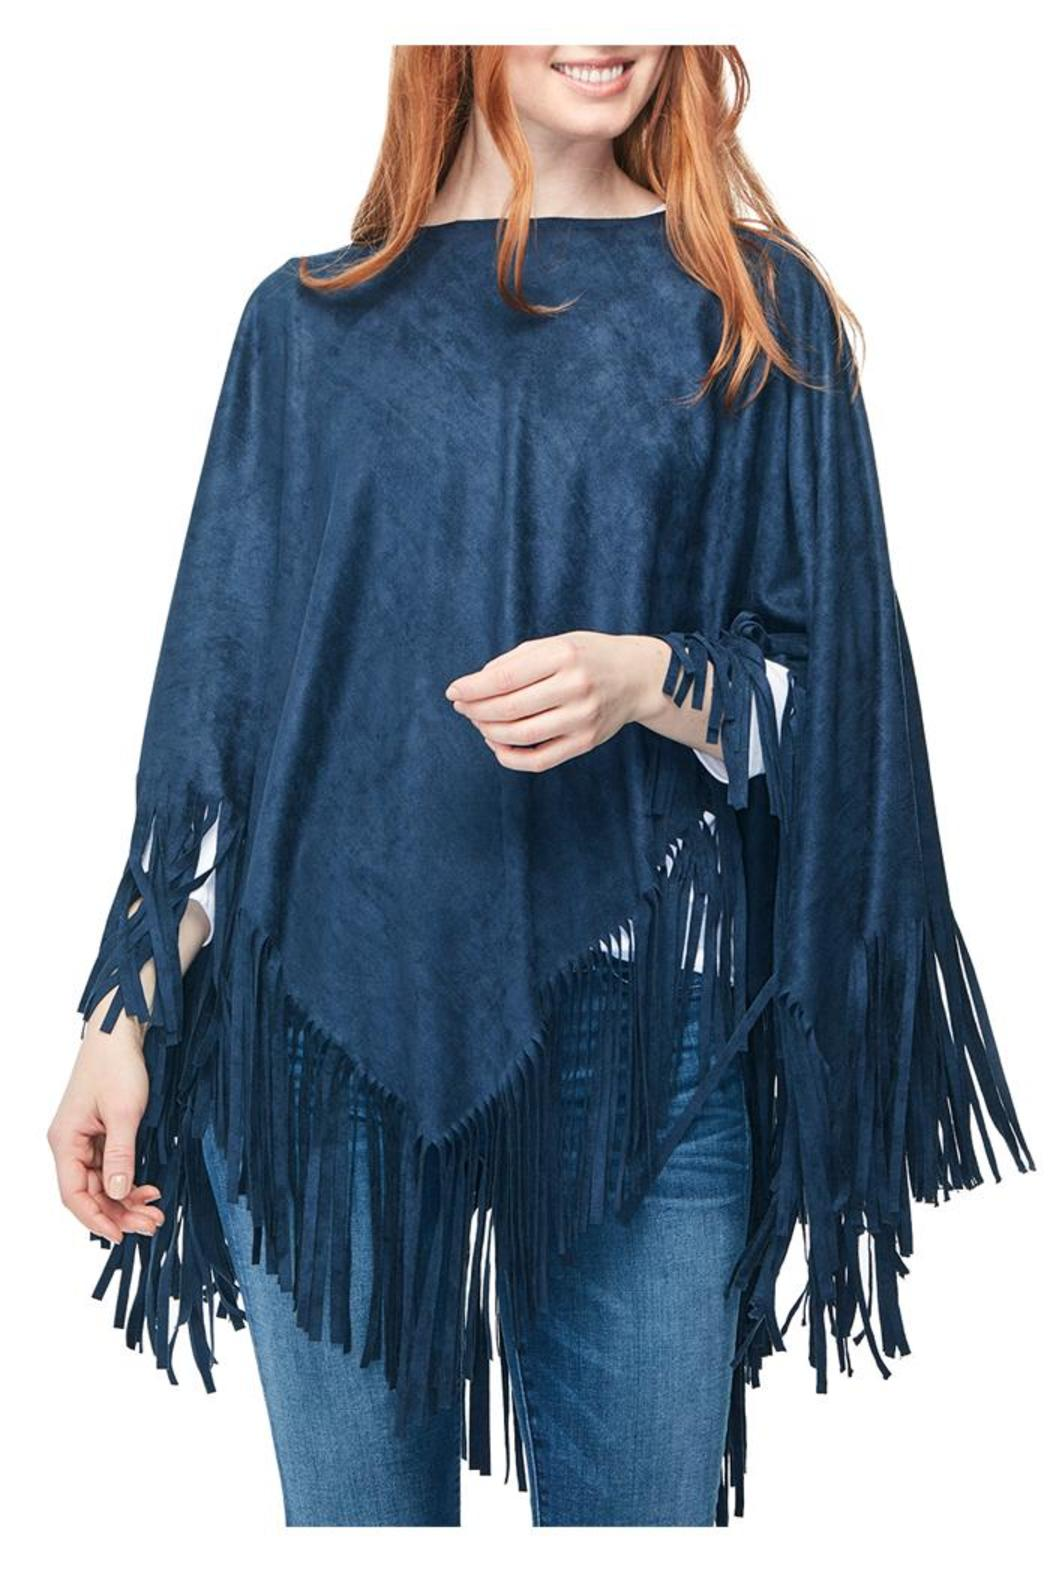 Two's Company Blue Suede Poncho - Main Image